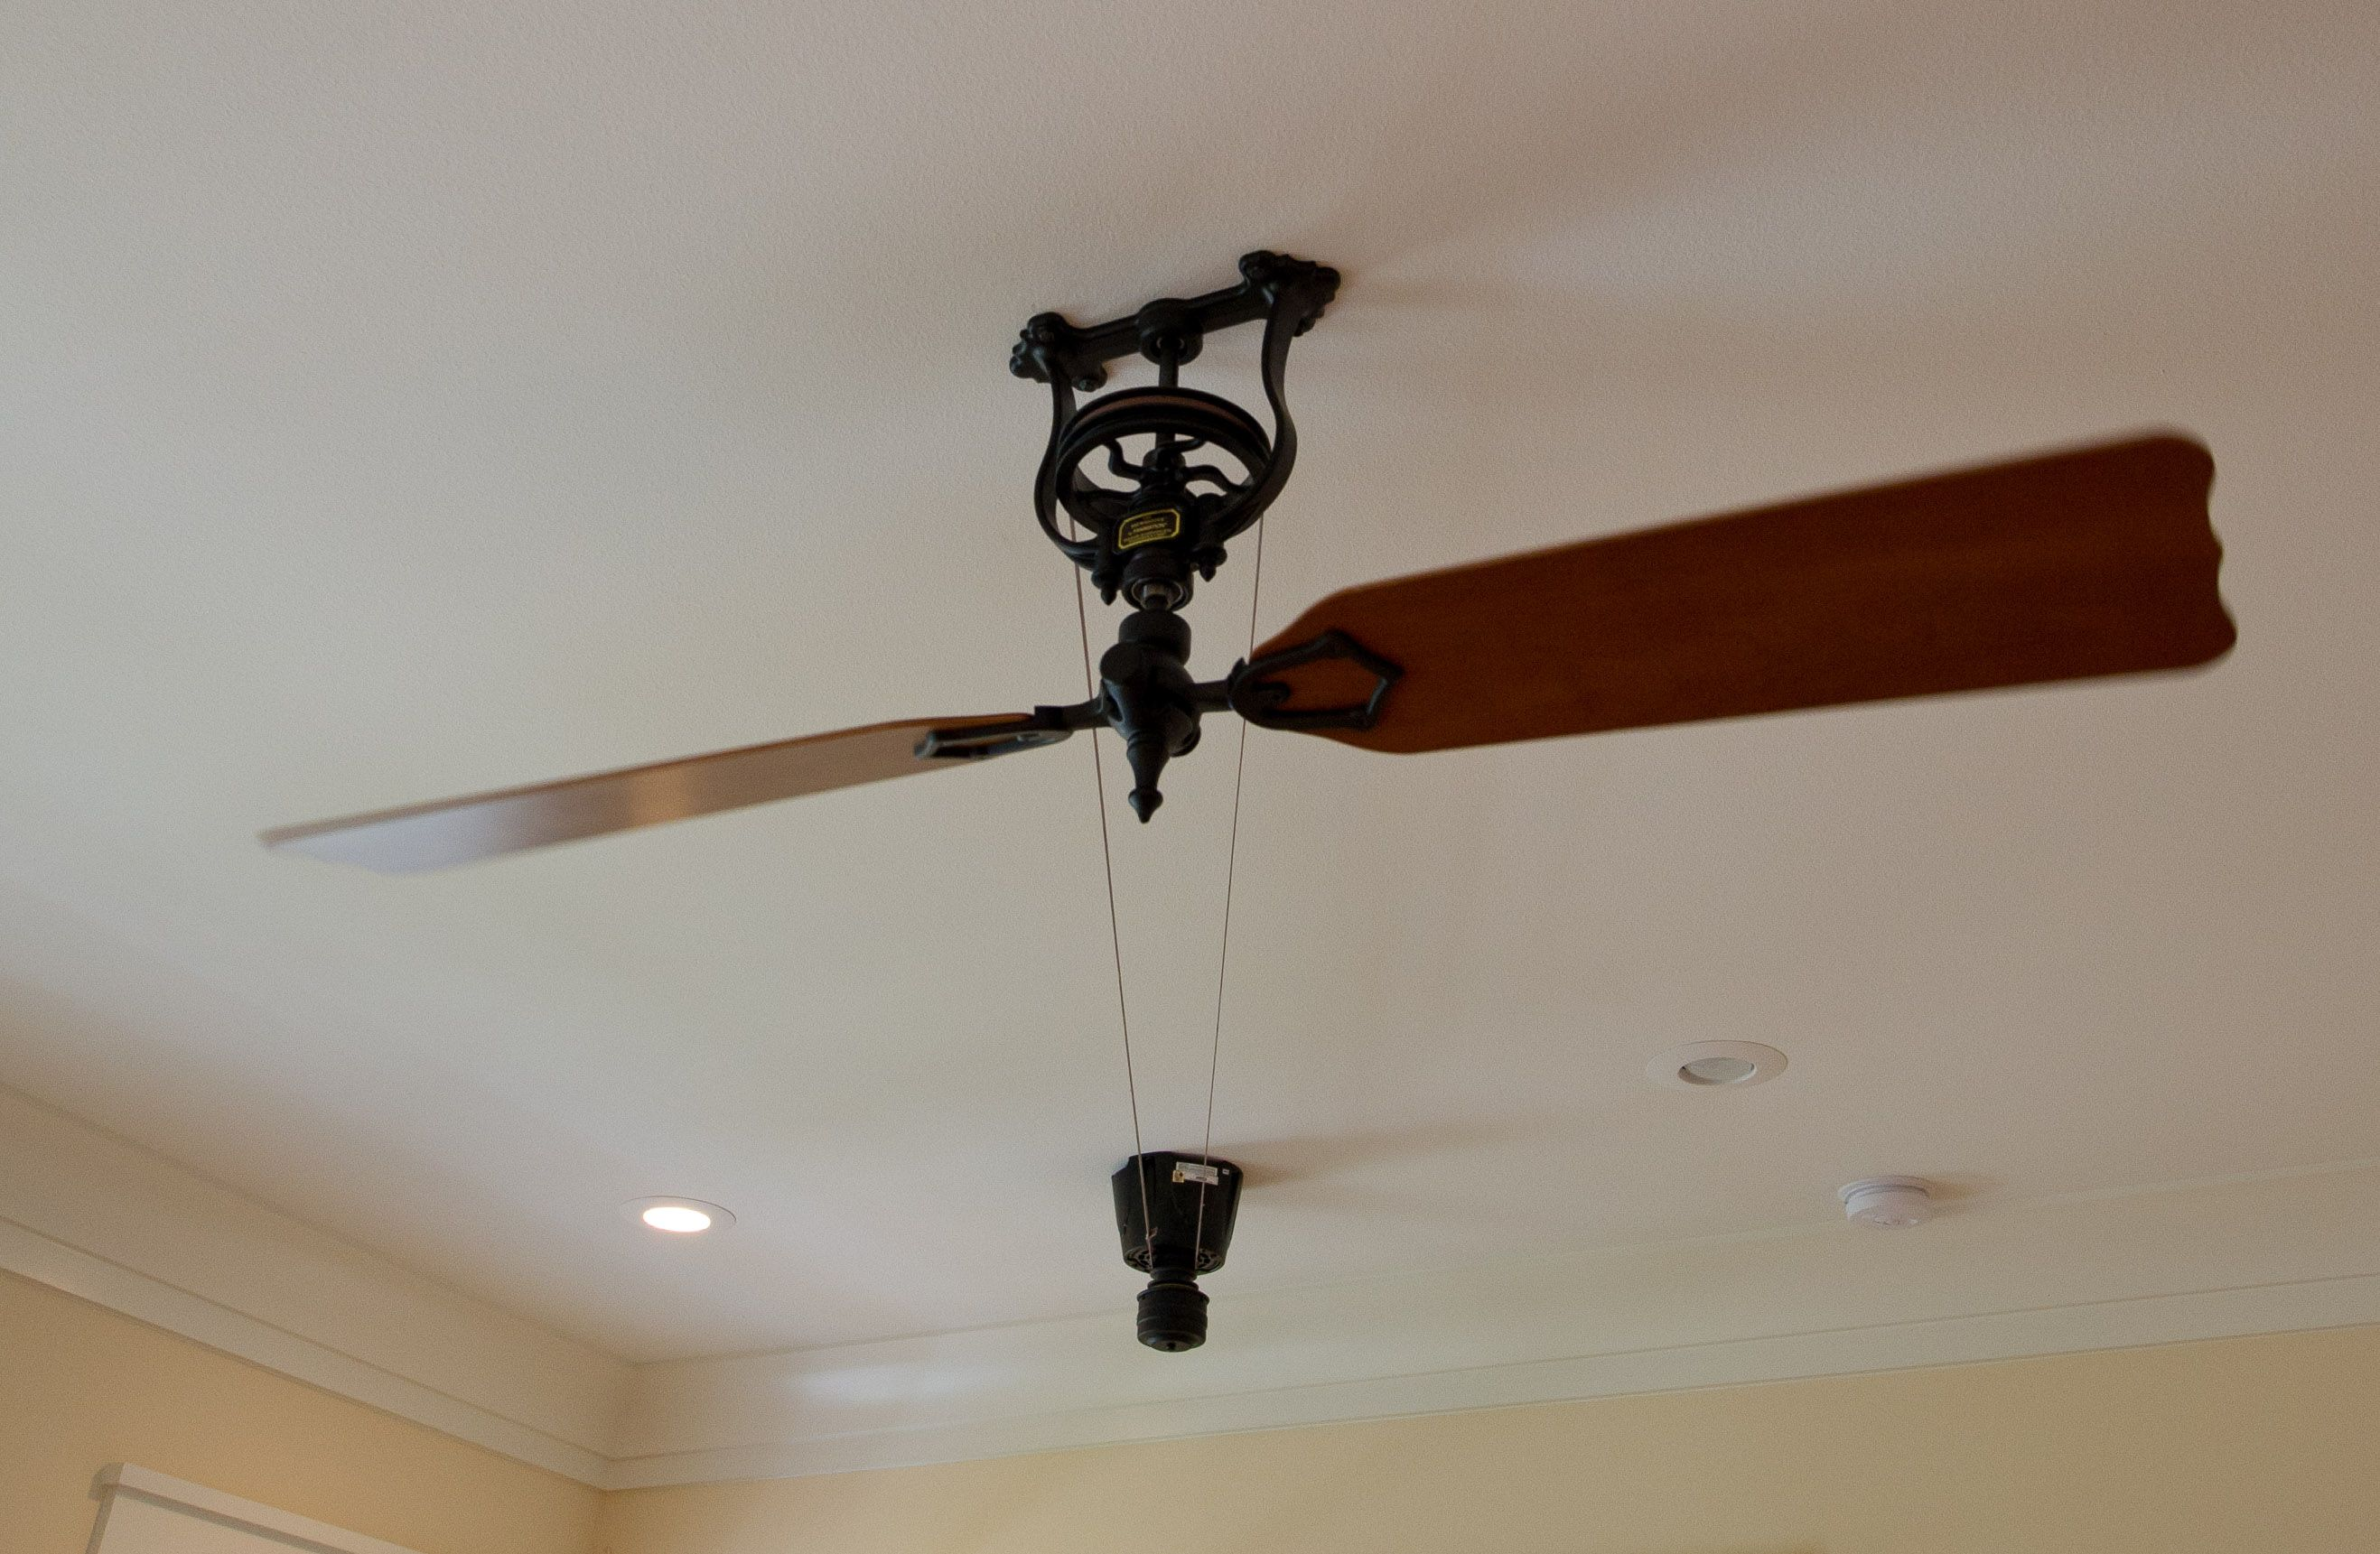 Vintage Fan With Motor And Pulley Belt Ceiling Fans Pinterest Vintage Fans Pulley And